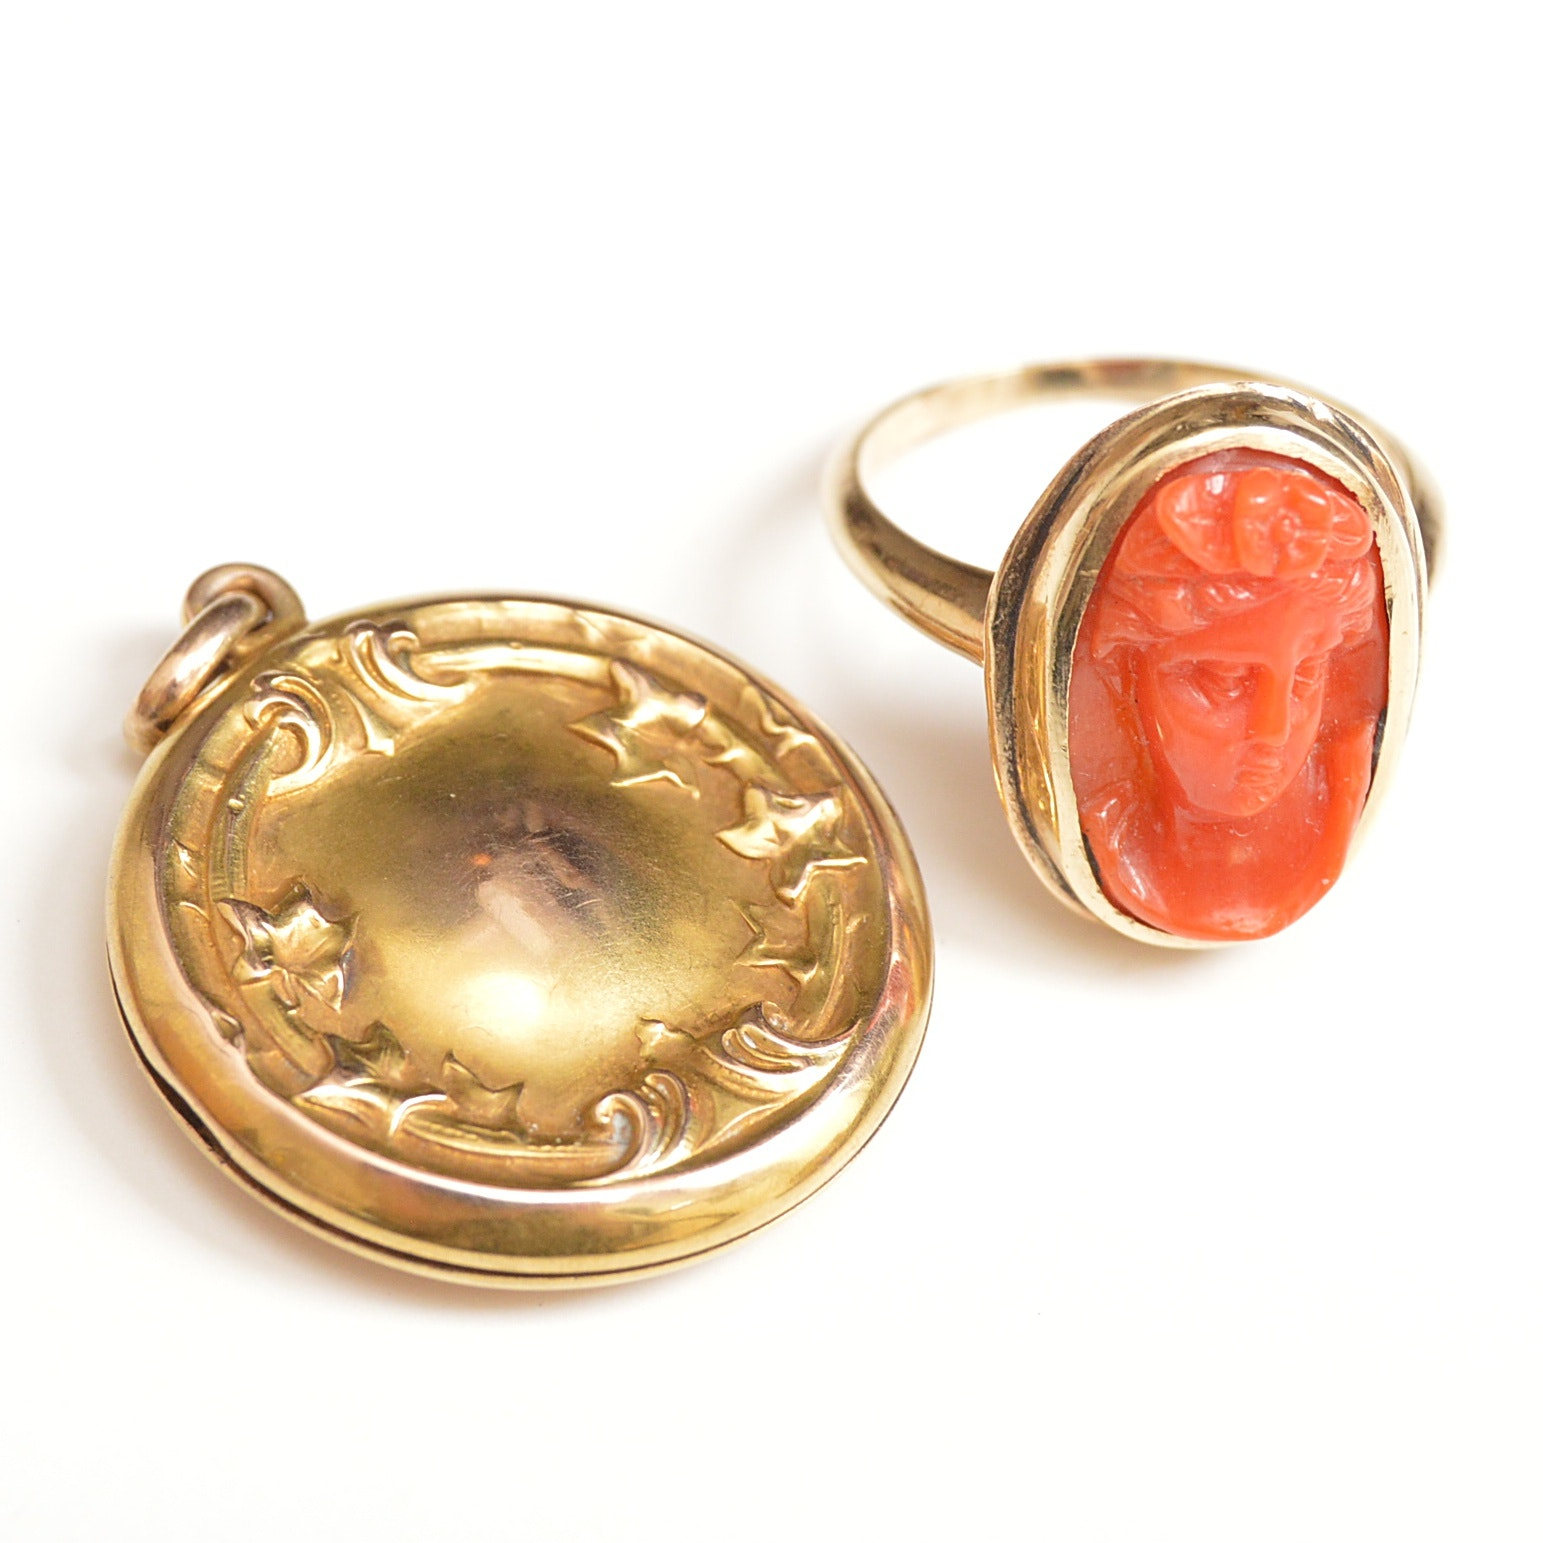 Victorian 10K Yellow Gold and Coral Ring and Art Nouveau 10K Yellow Gold Locket